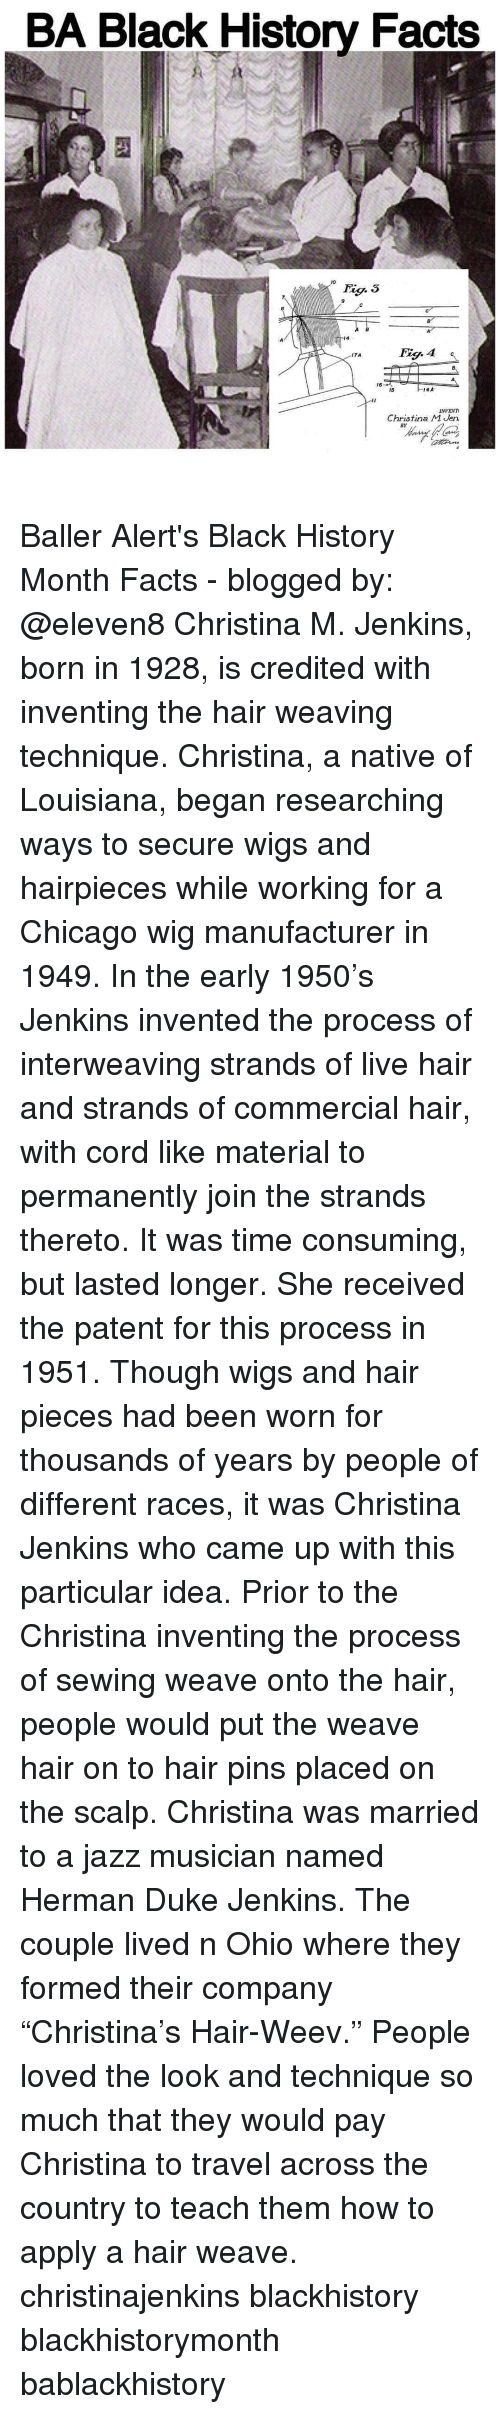 "nativism: BA Black History Facts  MO  4A  15  INVENT  Christina M Jen.  BY Baller Alert's Black History Month Facts - blogged by: @eleven8 Christina M. Jenkins, born in 1928, is credited with inventing the hair weaving technique. Christina, a native of Louisiana, began researching ways to secure wigs and hairpieces while working for a Chicago wig manufacturer in 1949. In the early 1950's Jenkins invented the process of interweaving strands of live hair and strands of commercial hair, with cord like material to permanently join the strands thereto. It was time consuming, but lasted longer. She received the patent for this process in 1951. Though wigs and hair pieces had been worn for thousands of years by people of different races, it was Christina Jenkins who came up with this particular idea. Prior to the Christina inventing the process of sewing weave onto the hair, people would put the weave hair on to hair pins placed on the scalp. Christina was married to a jazz musician named Herman Duke Jenkins. The couple lived n Ohio where they formed their company ""Christina's Hair-Weev."" People loved the look and technique so much that they would pay Christina to travel across the country to teach them how to apply a hair weave. christinajenkins blackhistory blackhistorymonth bablackhistory"